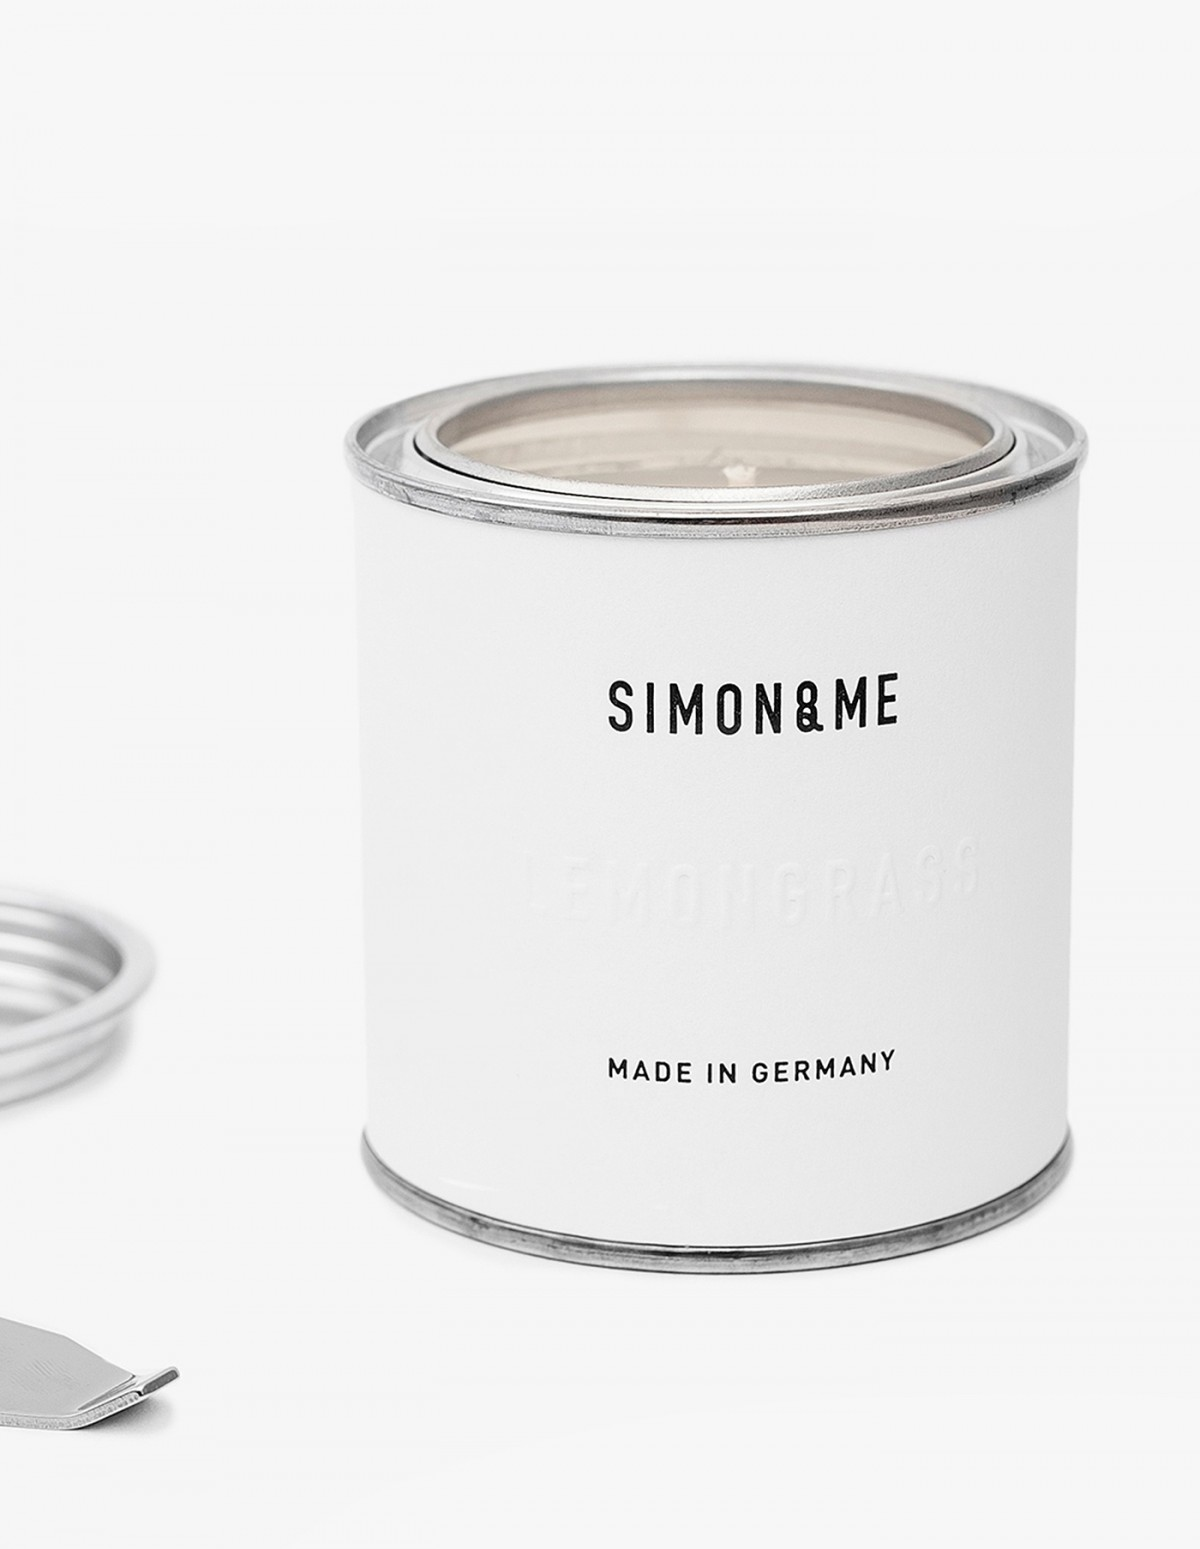 The Scented Candle in Mountain Pine